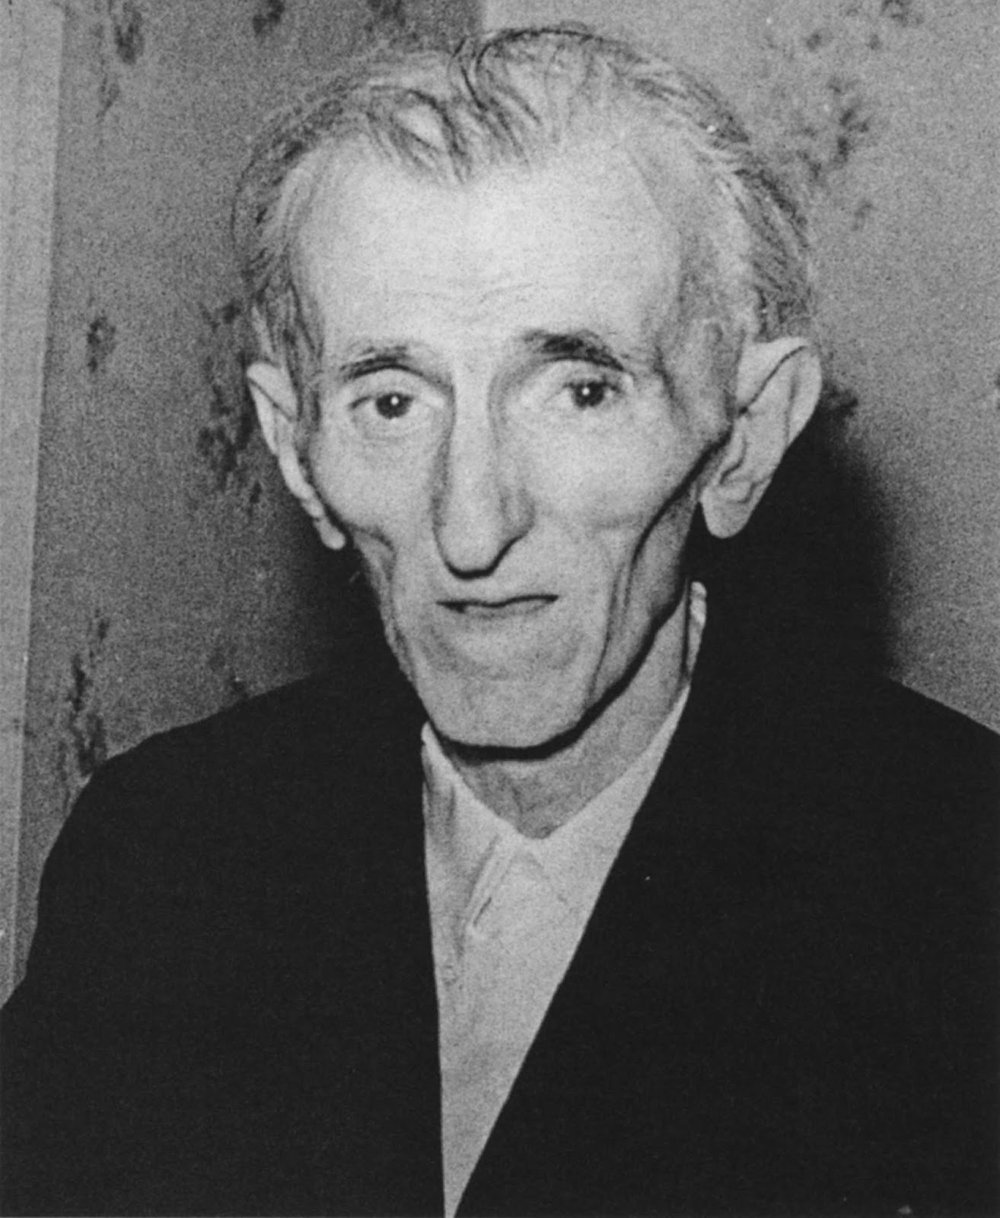 This is the last known photograph of famous scientist, Nikola Tesla who died on the 7 January 1943 at the age of 86, 6 days after this photograph was taken.